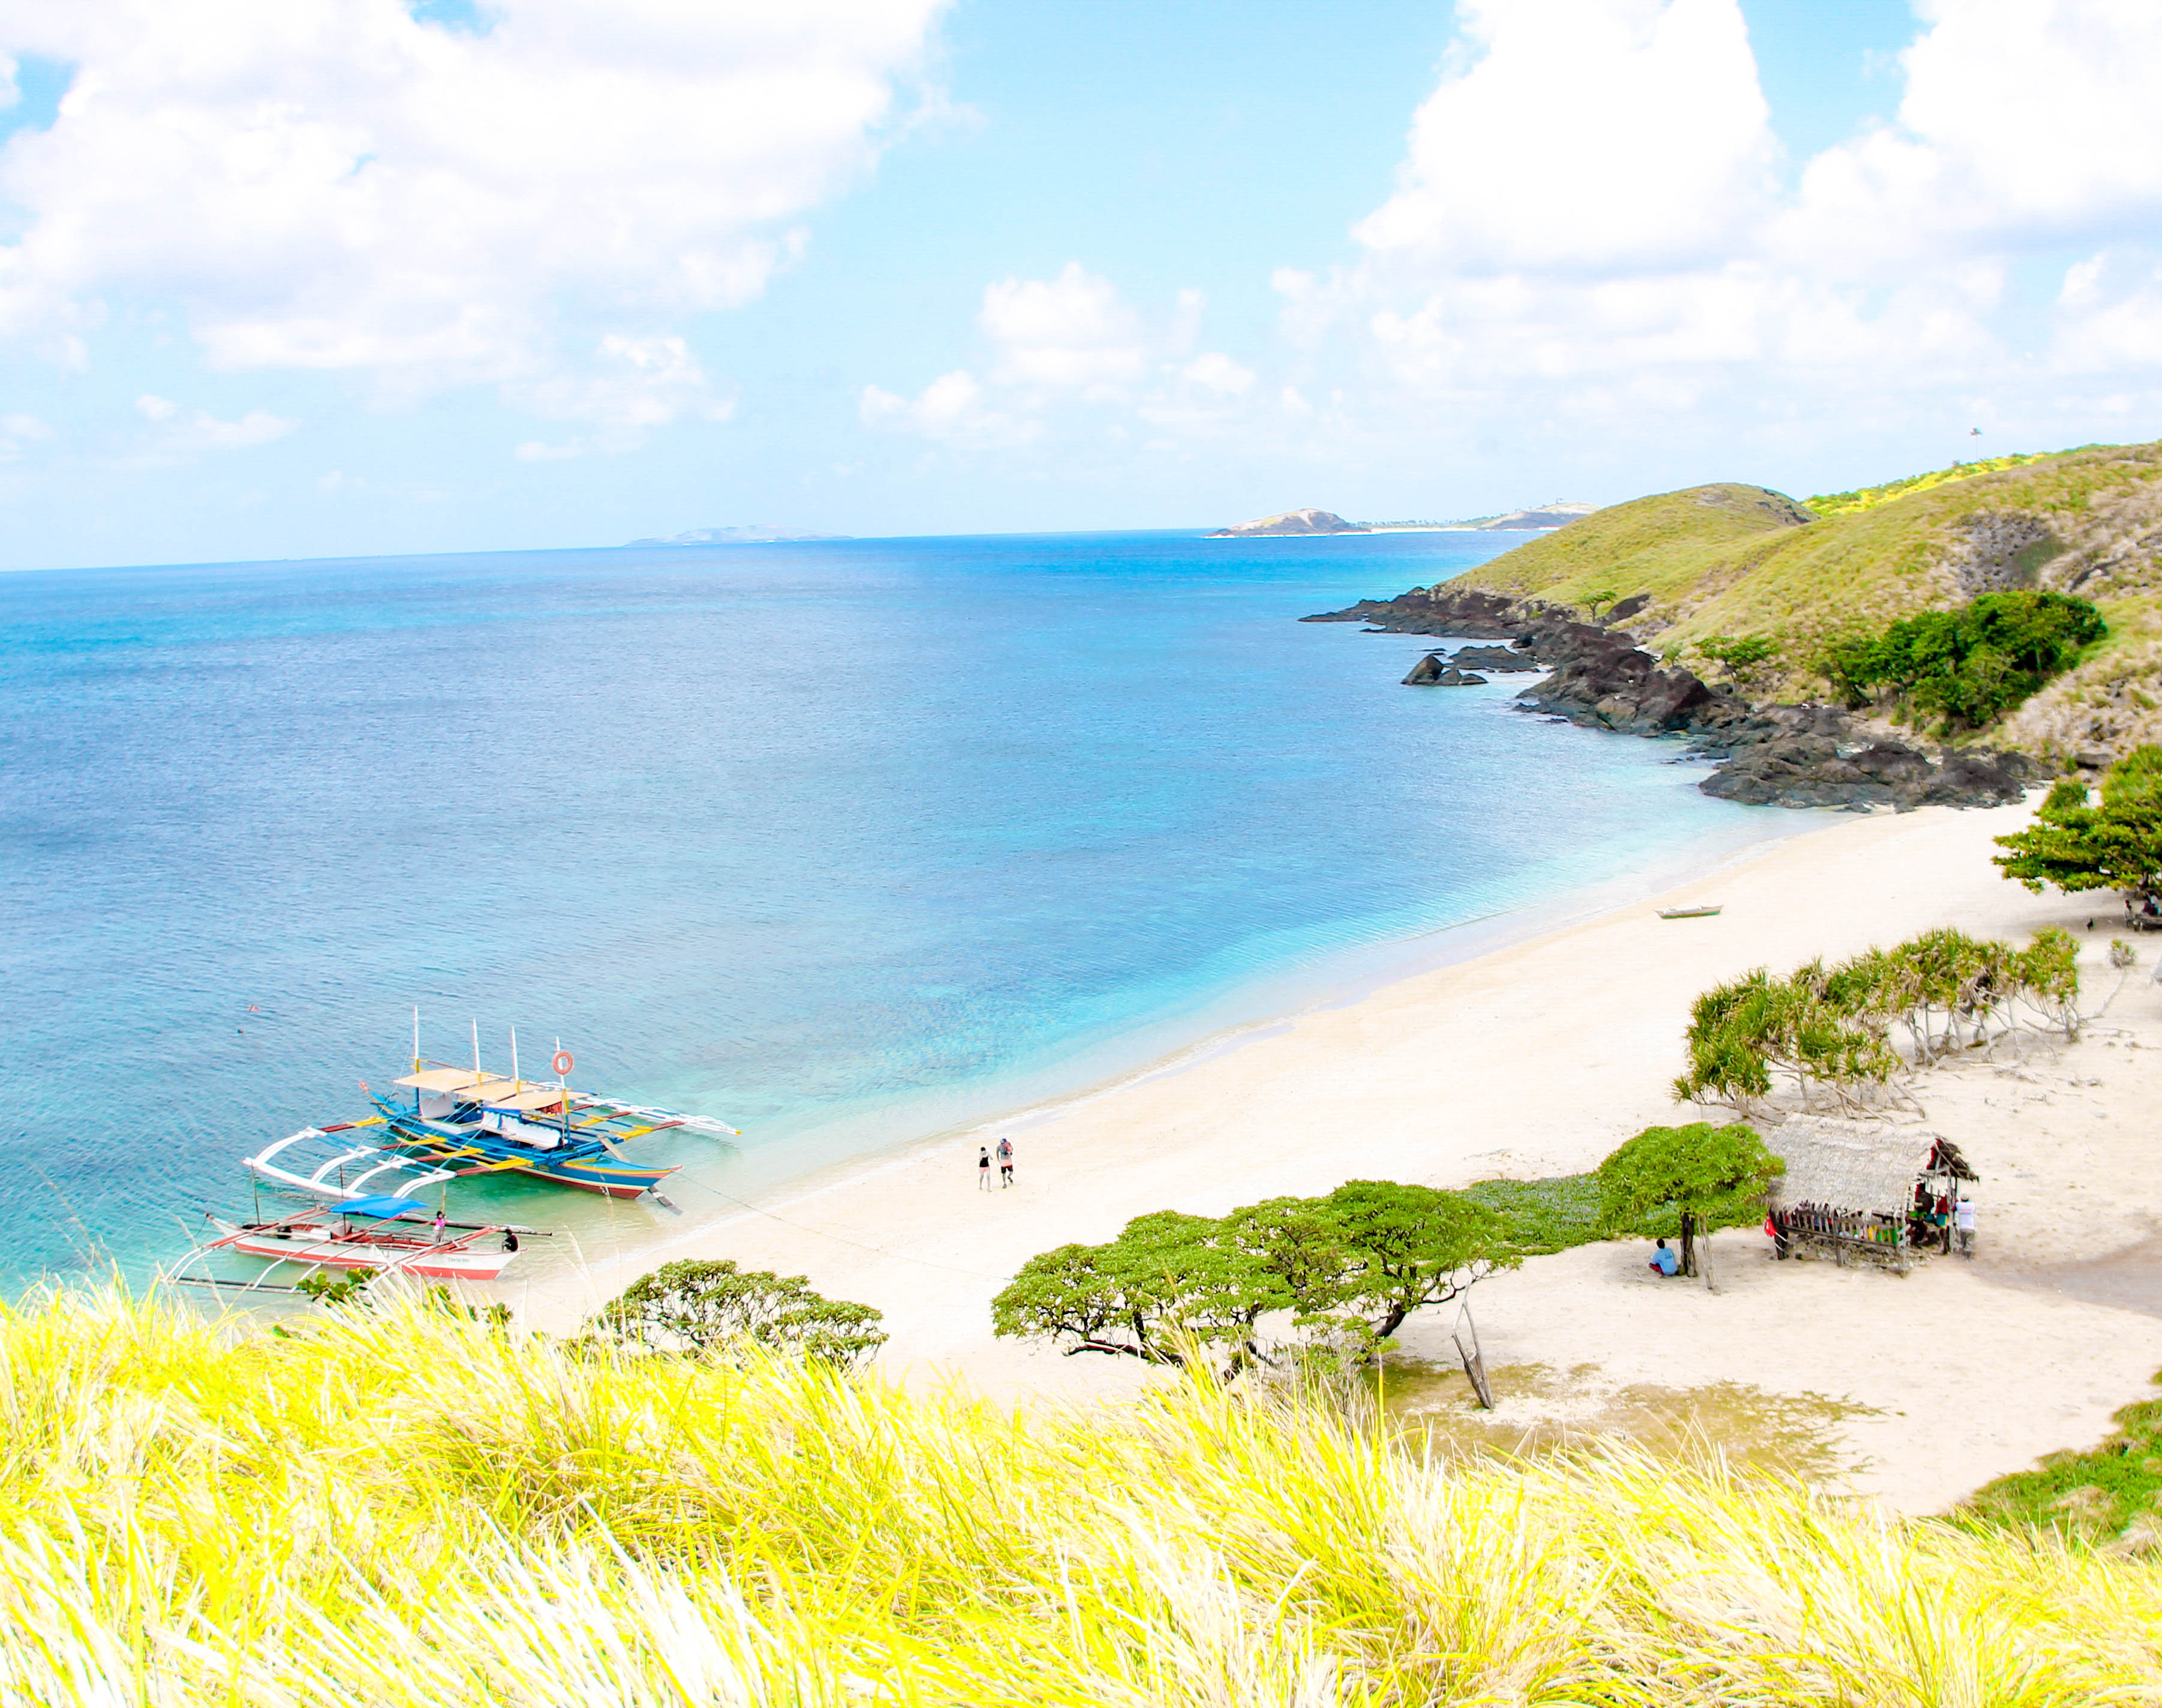 Grassy hill overlooking a white sand beach with several trees fronting the sea in Calaguas, Philippines